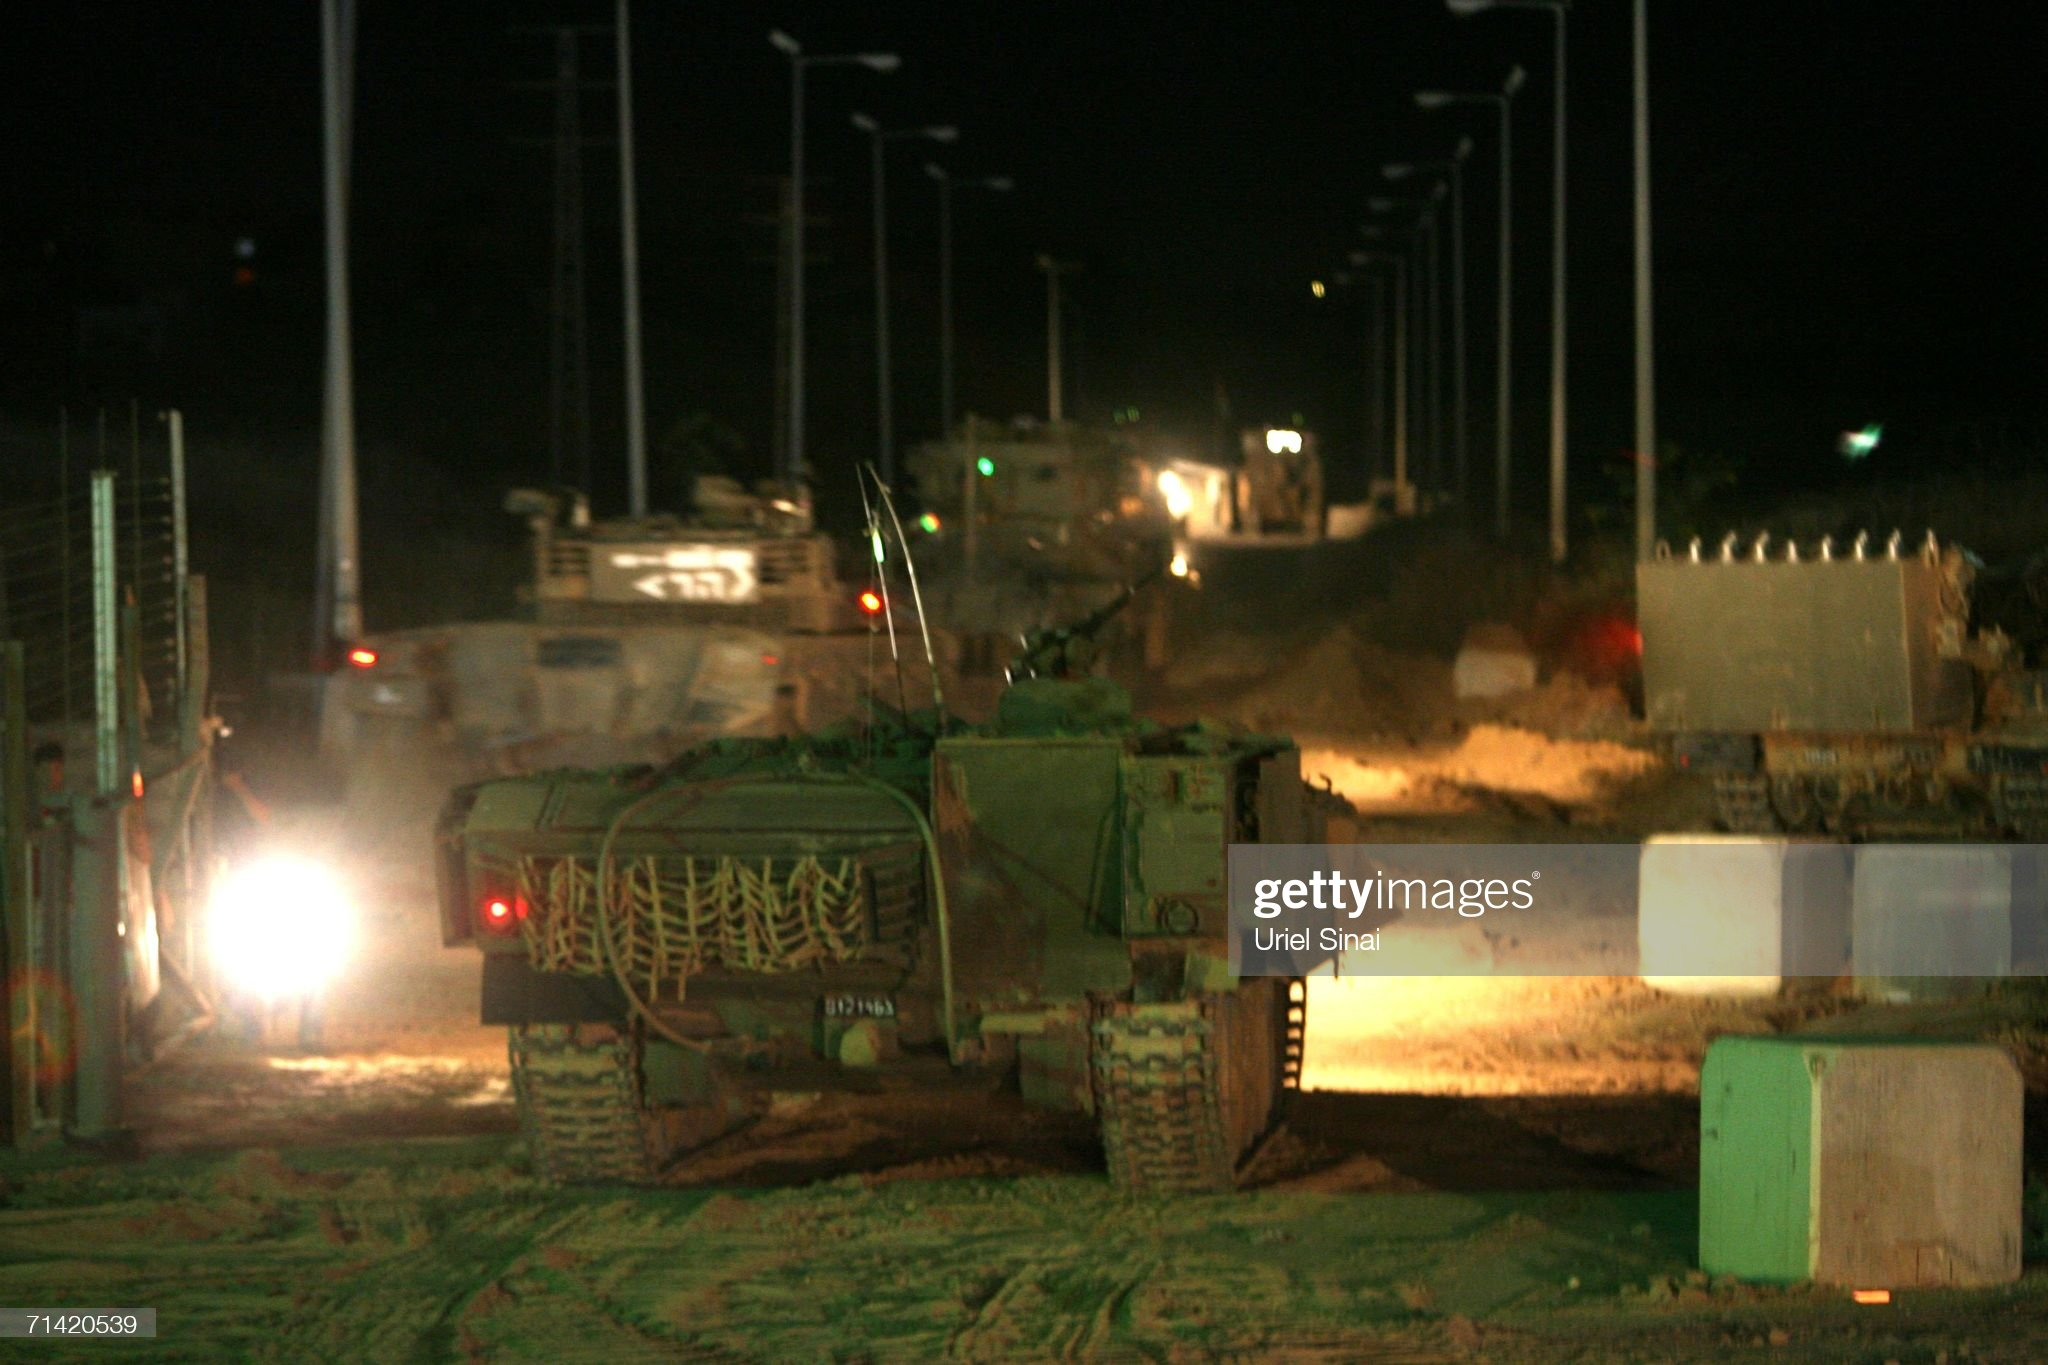 https://media.gettyimages.com/photos/an-israeli-army-tank-convoy-rolls-into-the-central-gaza-strip-july-12-picture-id71420539?s=2048x2048